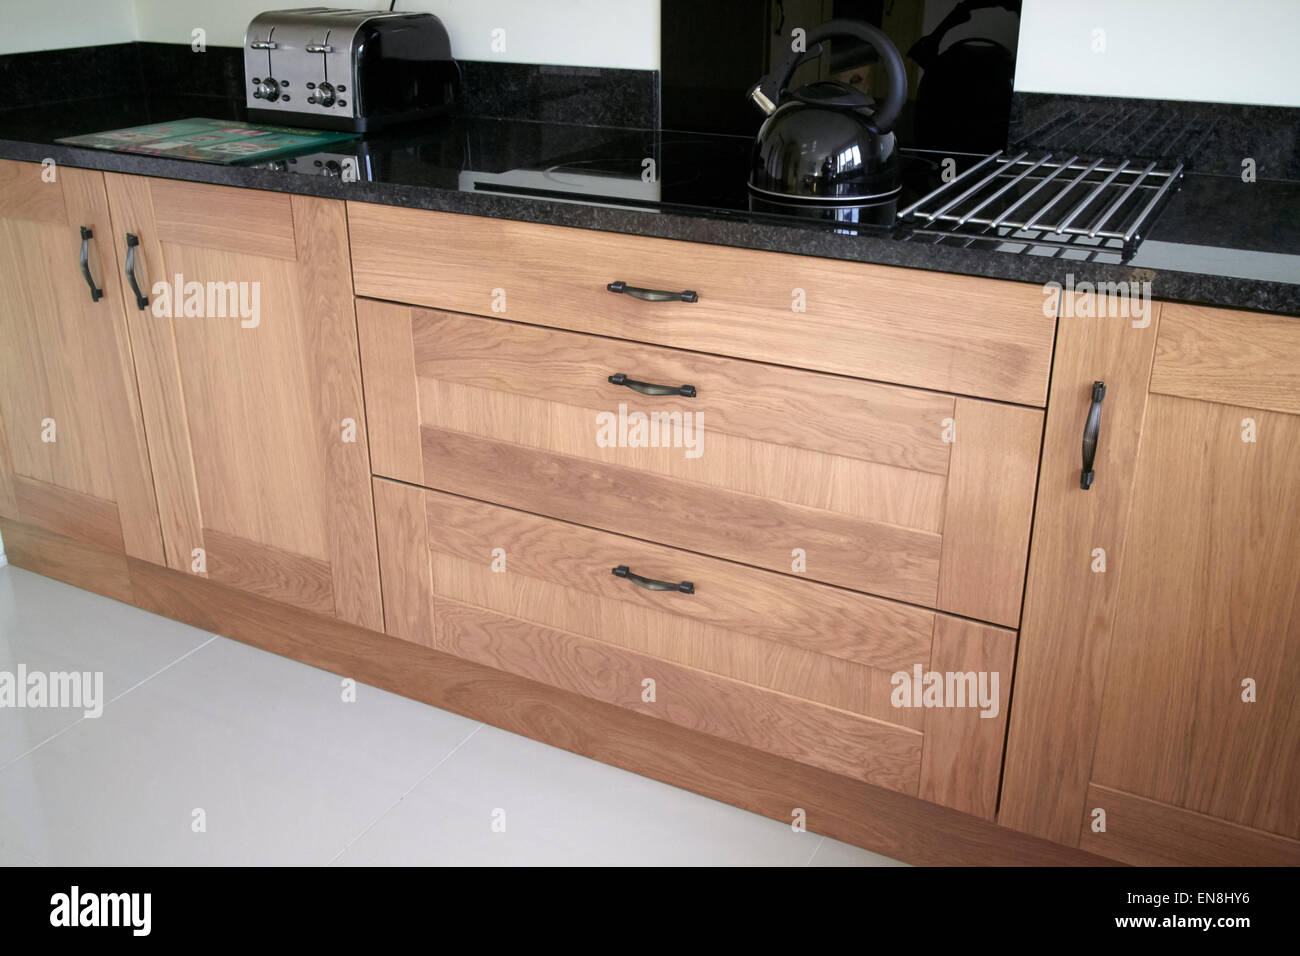 stock photo brand new kitchen cabinets and granite worktops in a new build property in the uk